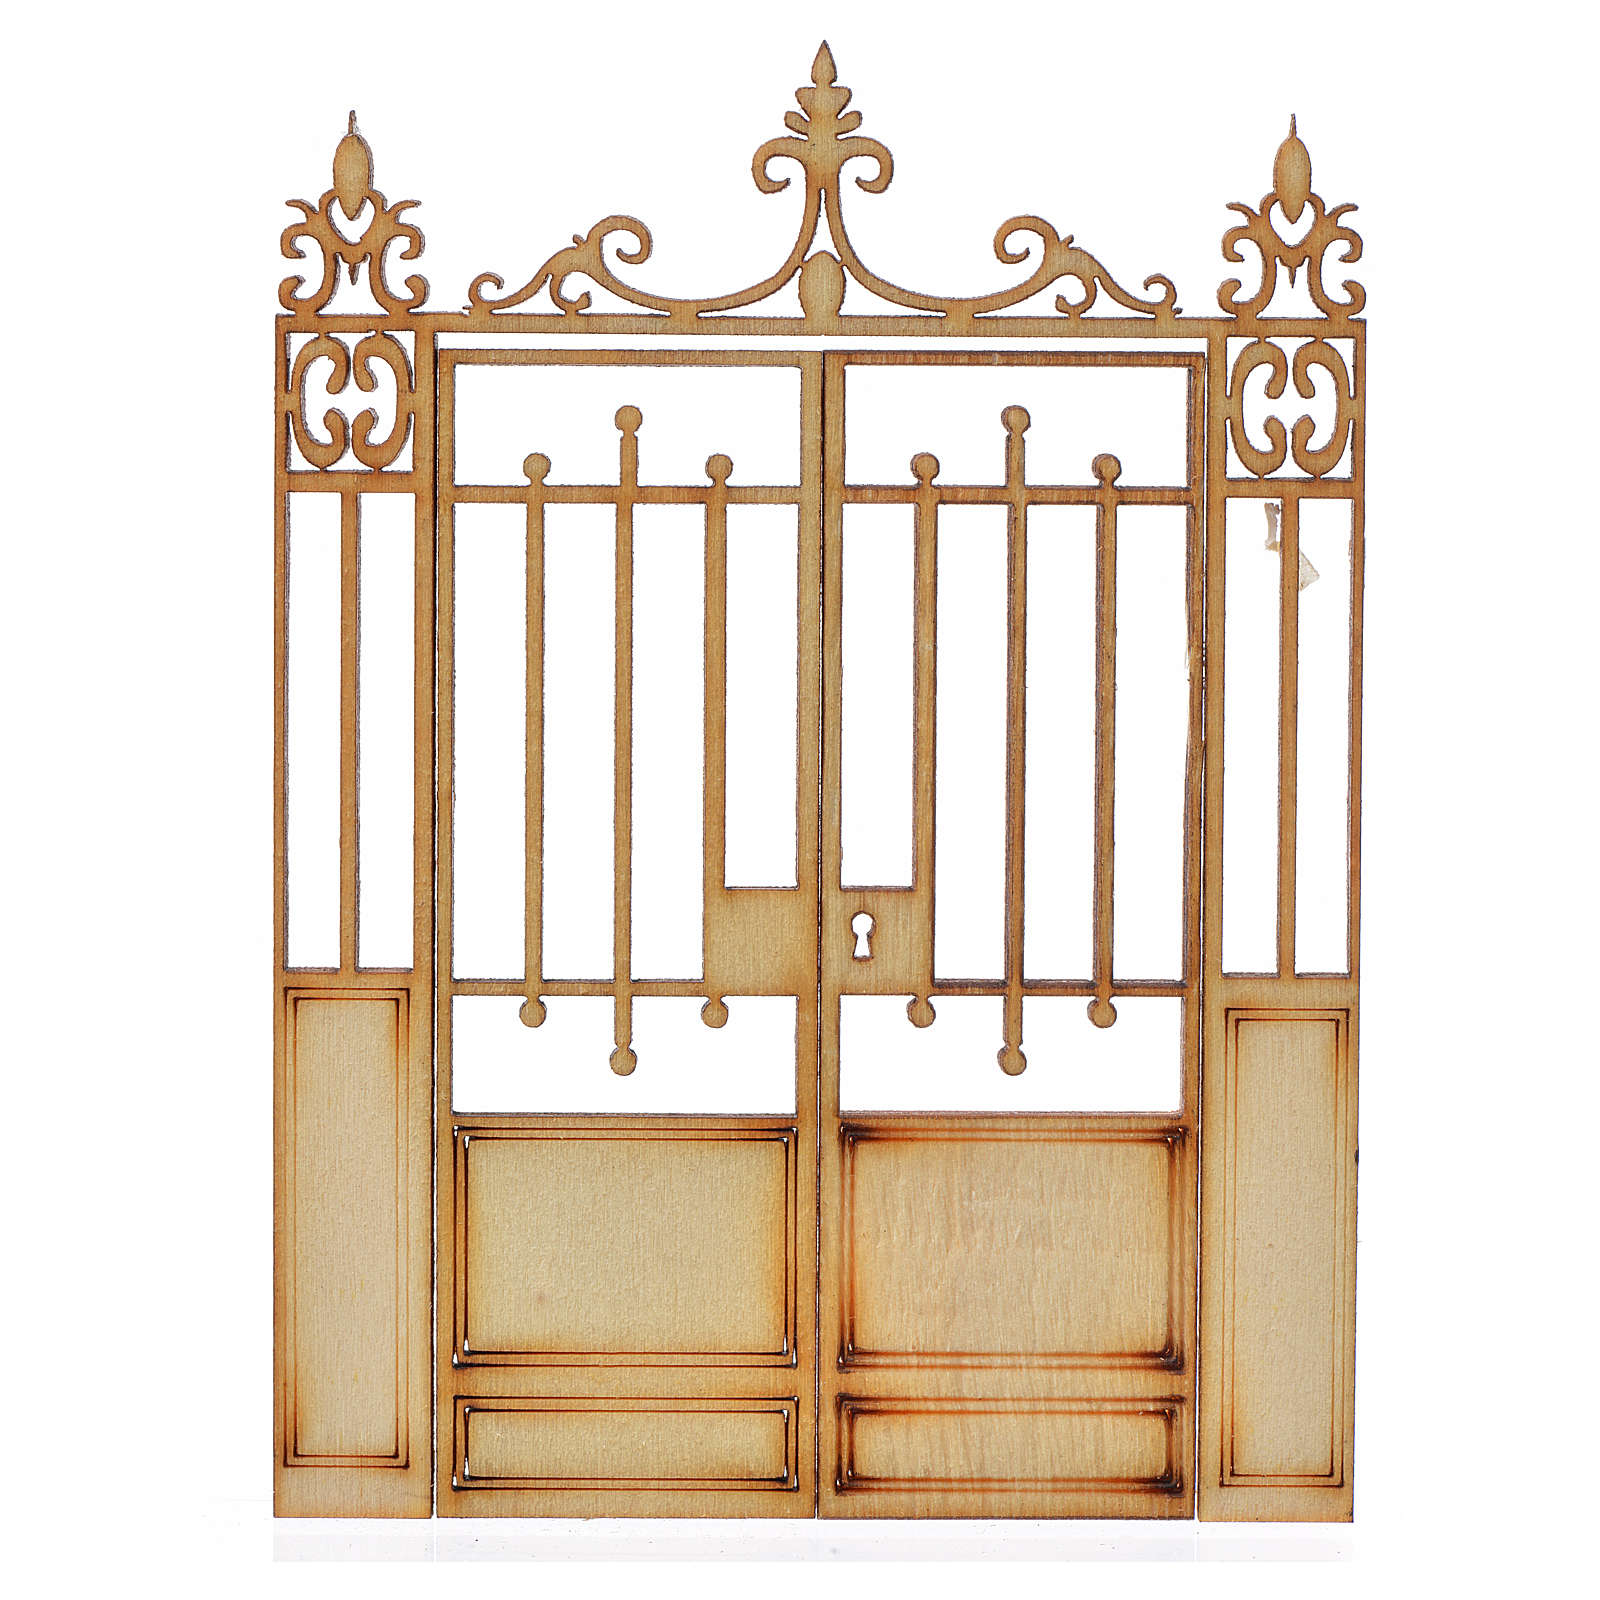 Nativity accessory, wooden gate with 2 doors, 10x7.5cm 4